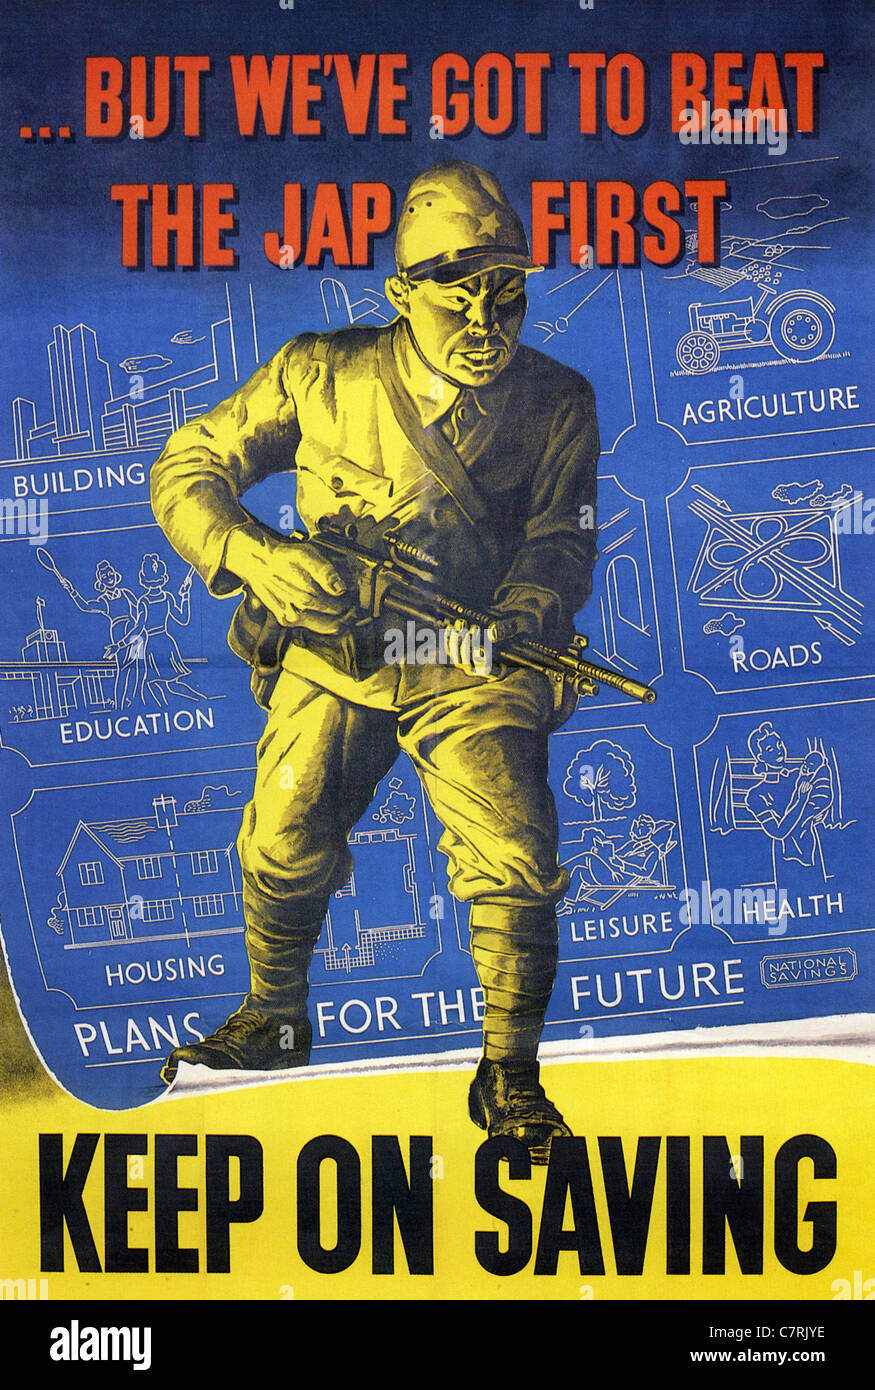 Ww2 Posters Stock Photos & Ww2 Posters Stock Images - Alamy